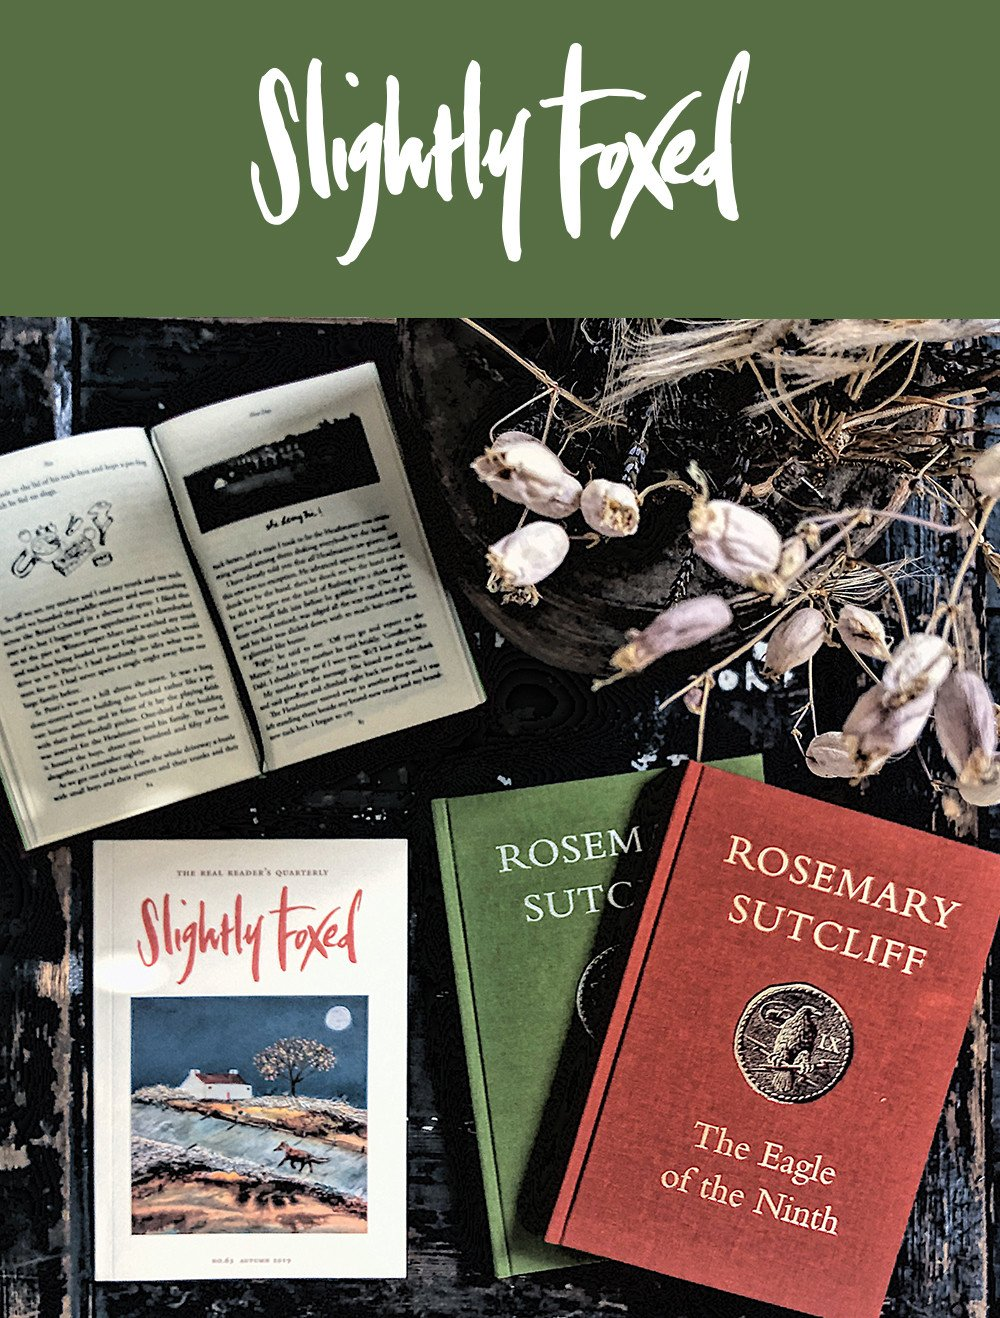 New this Autumn from Slightly Foxed